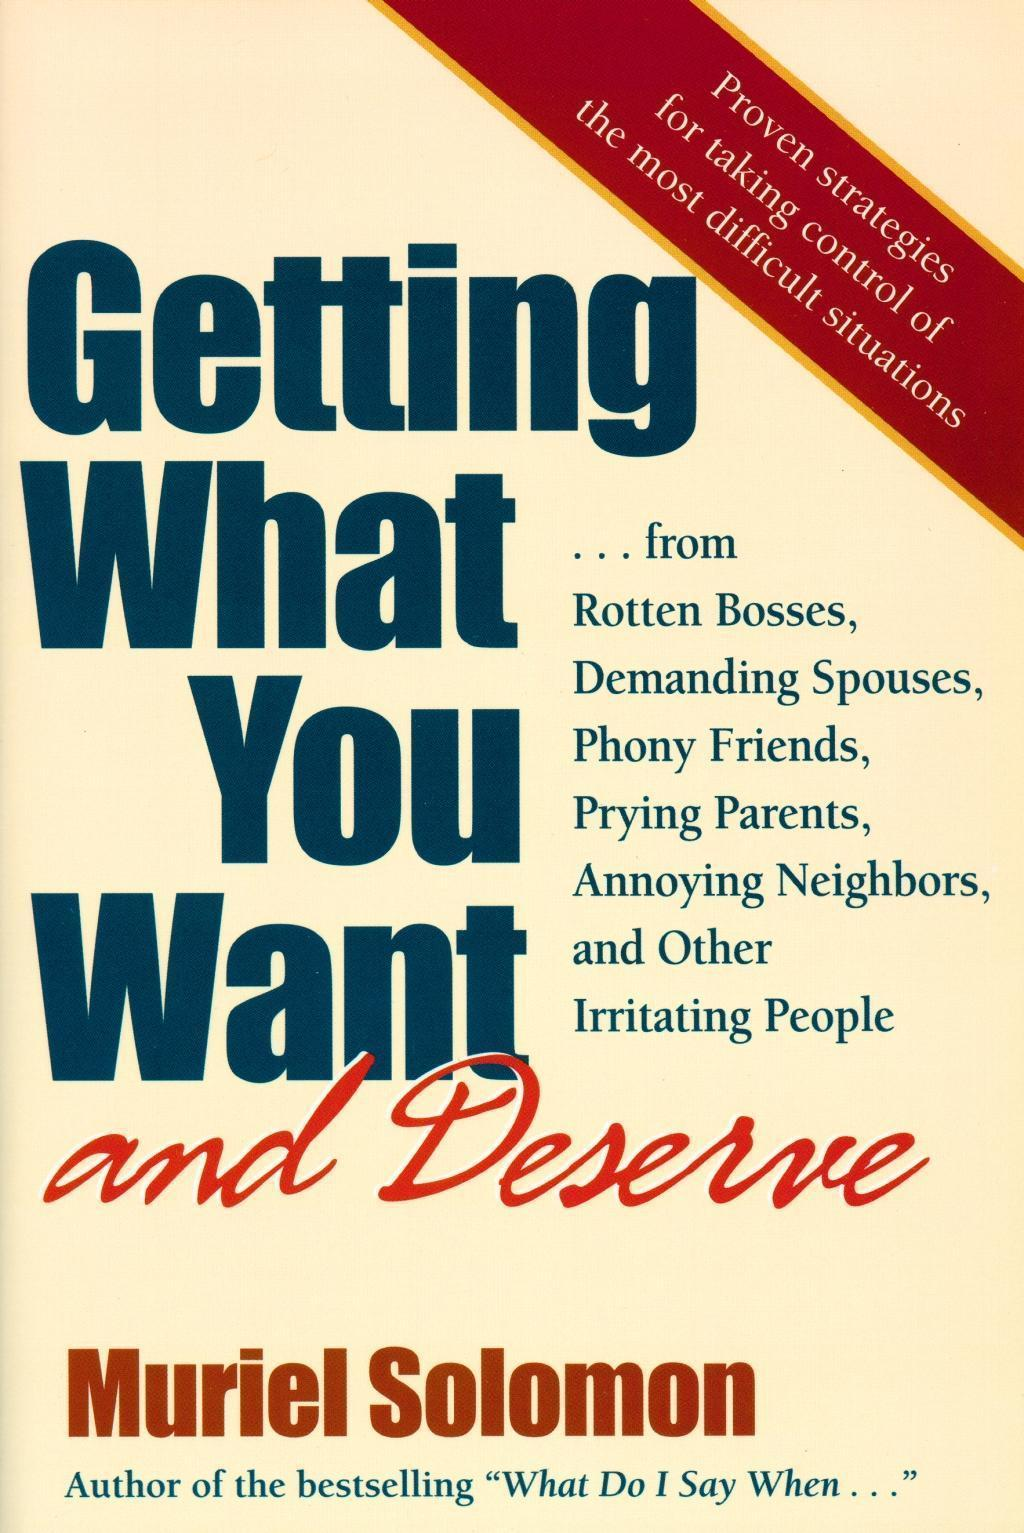 Getting What You Want (and Deserve)